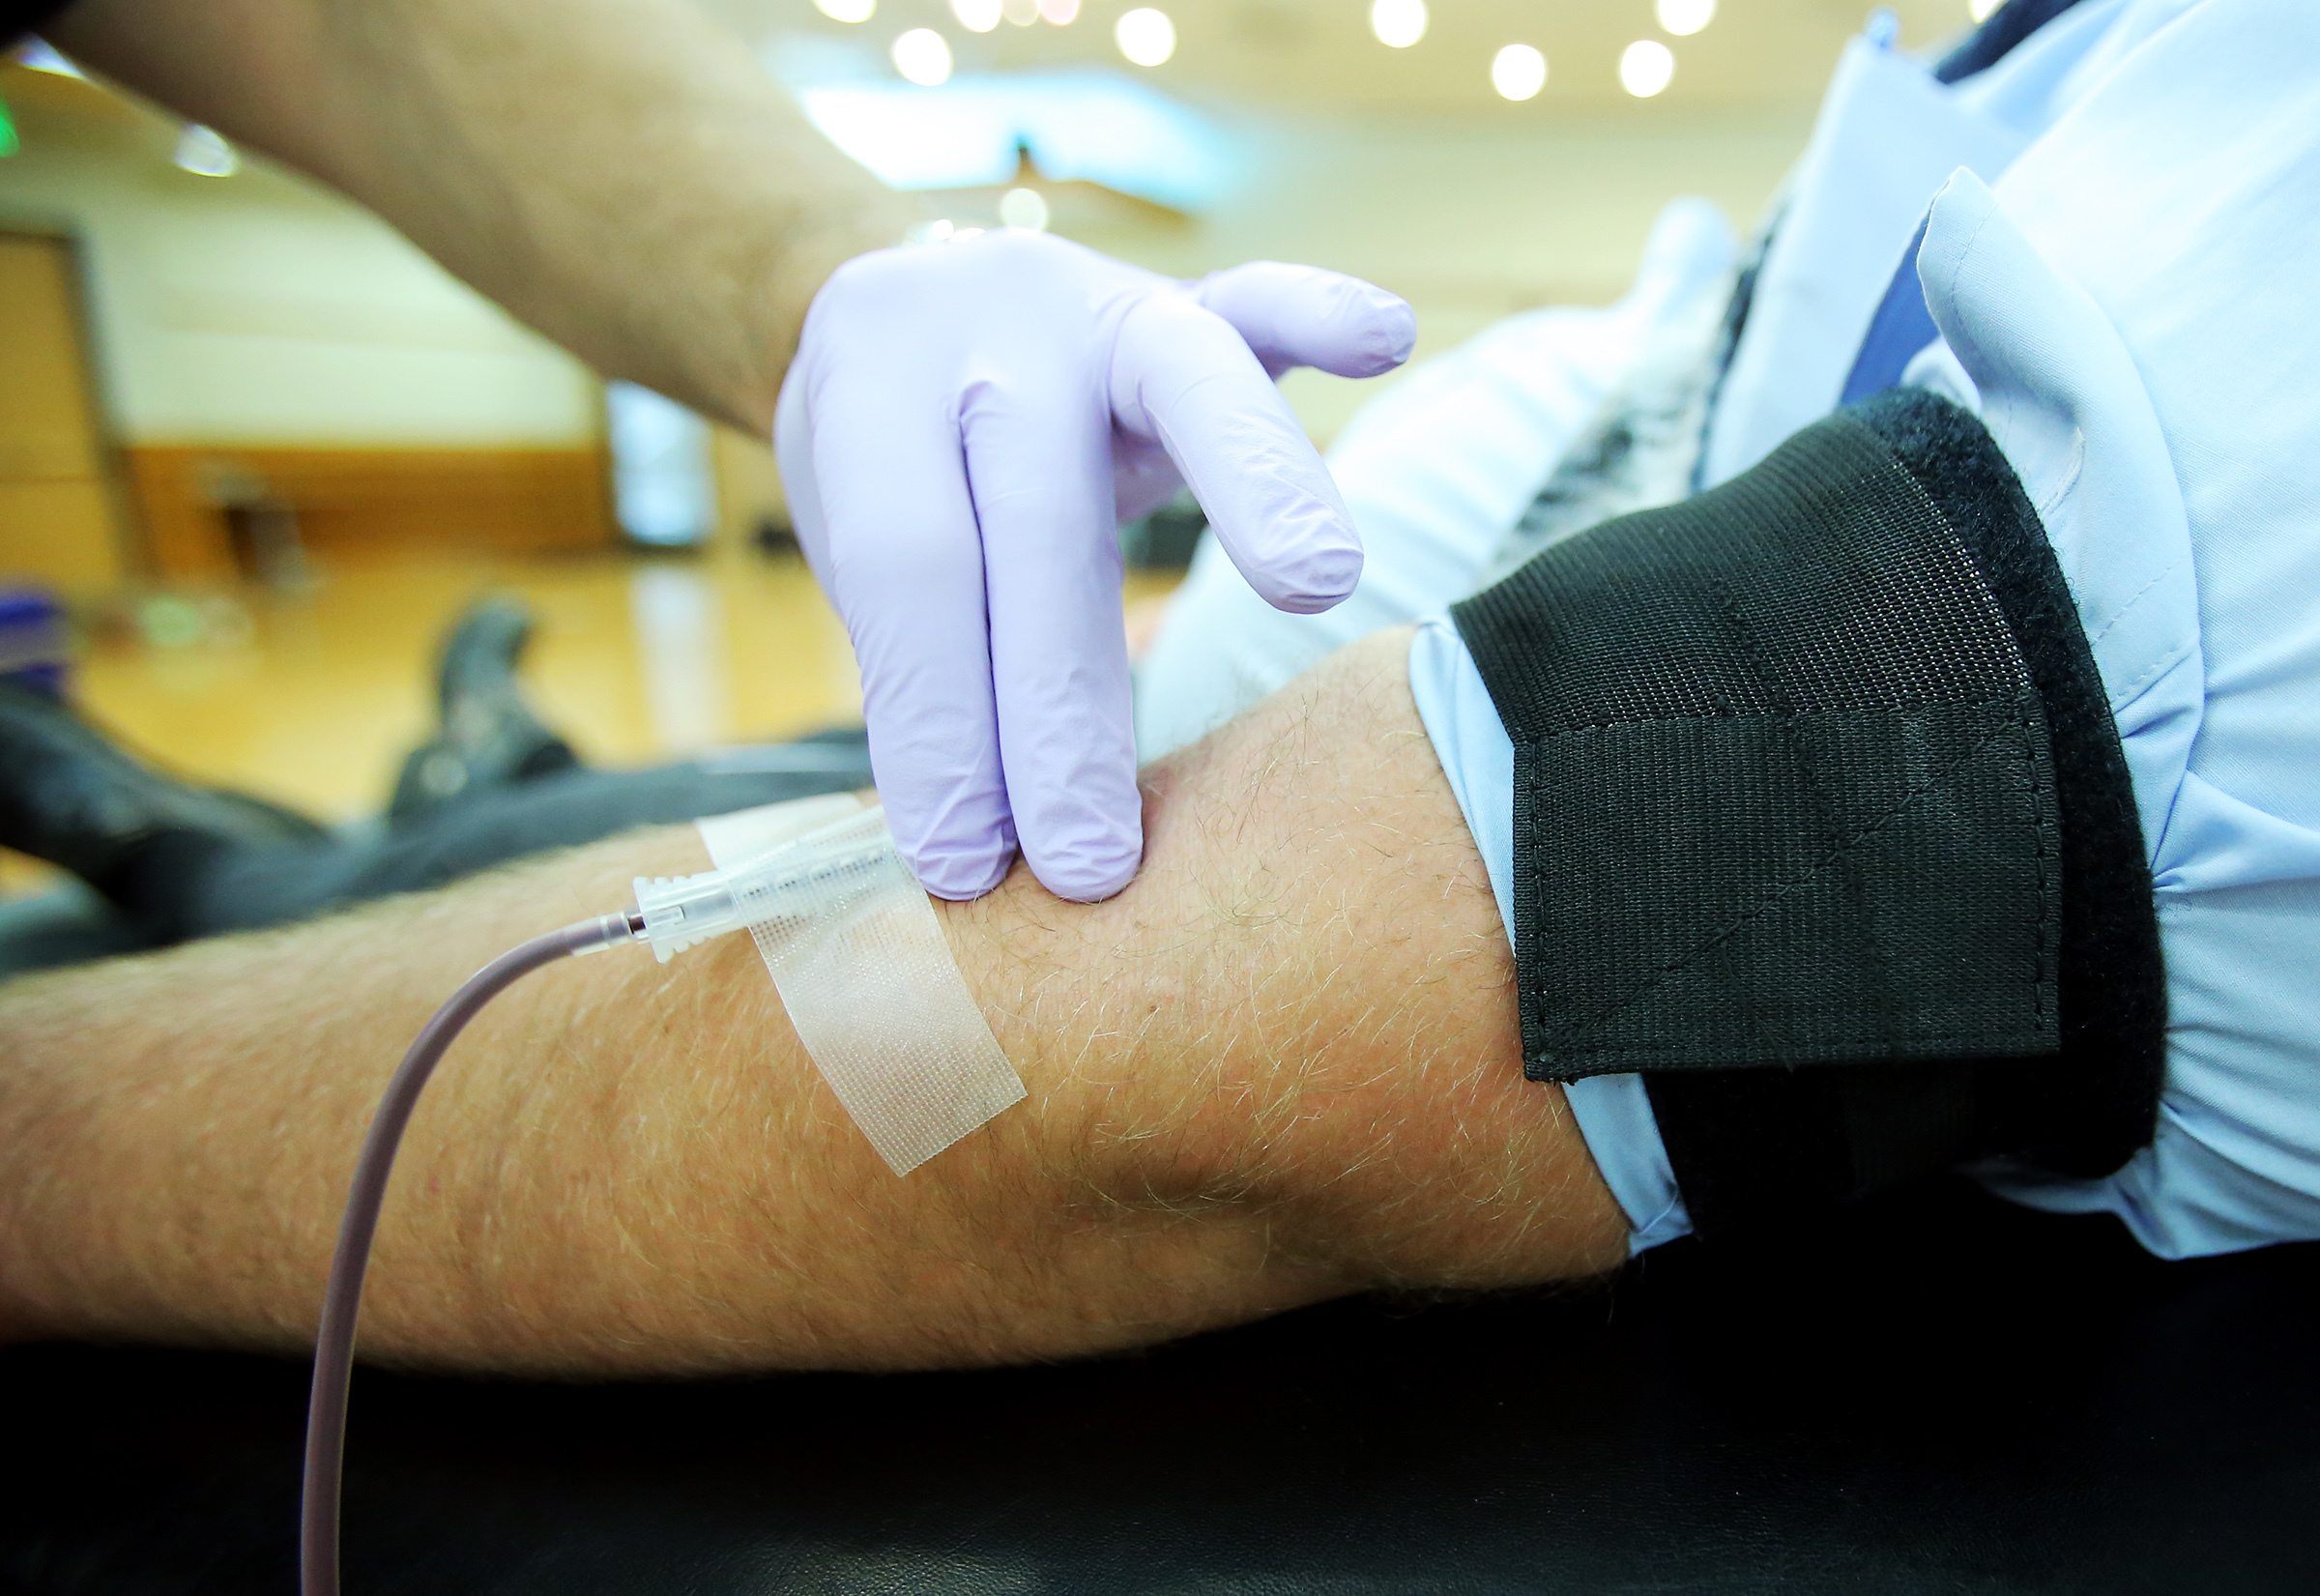 American Red Cross phlebotomist Alex White holds a needle in Brock Liston's arm steady as Liston donates blood at Salt Lake Community College in Taylorsville on Tuesday, June 11, 2019.